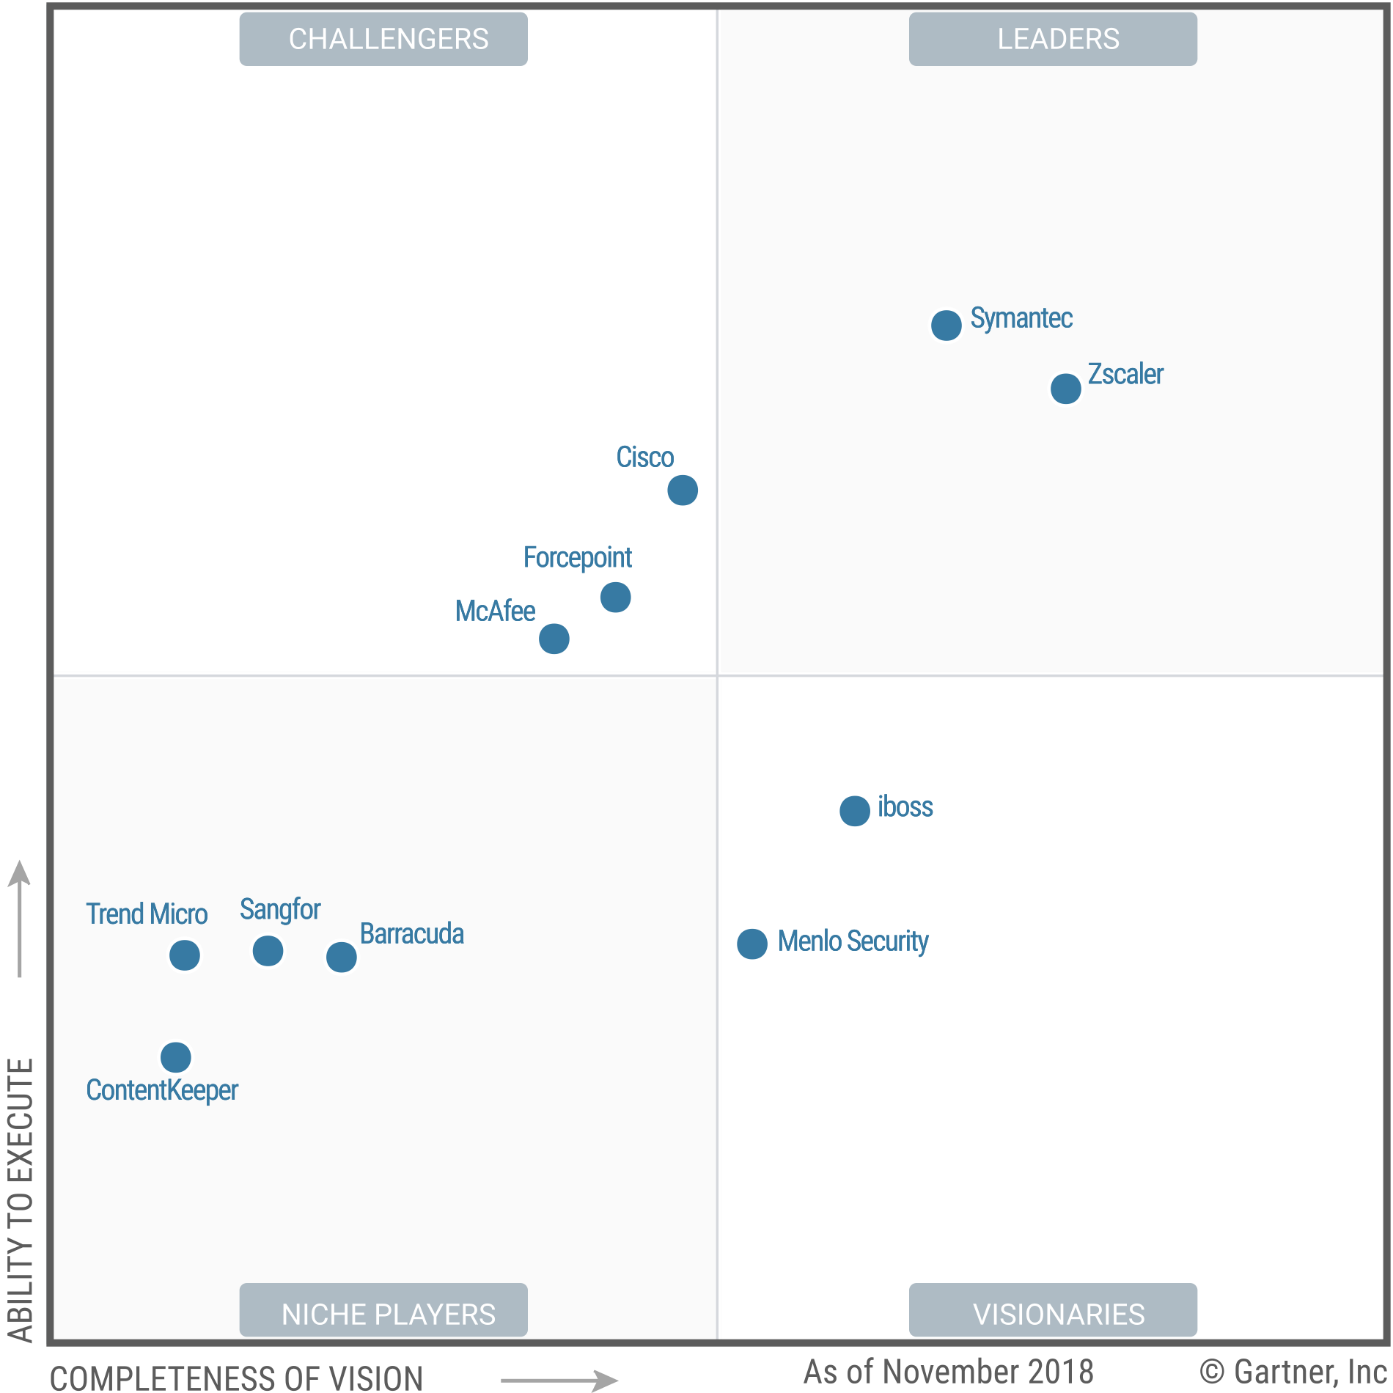 Magic Quadrant for Secure Web Gateways 2018 (G00335718)